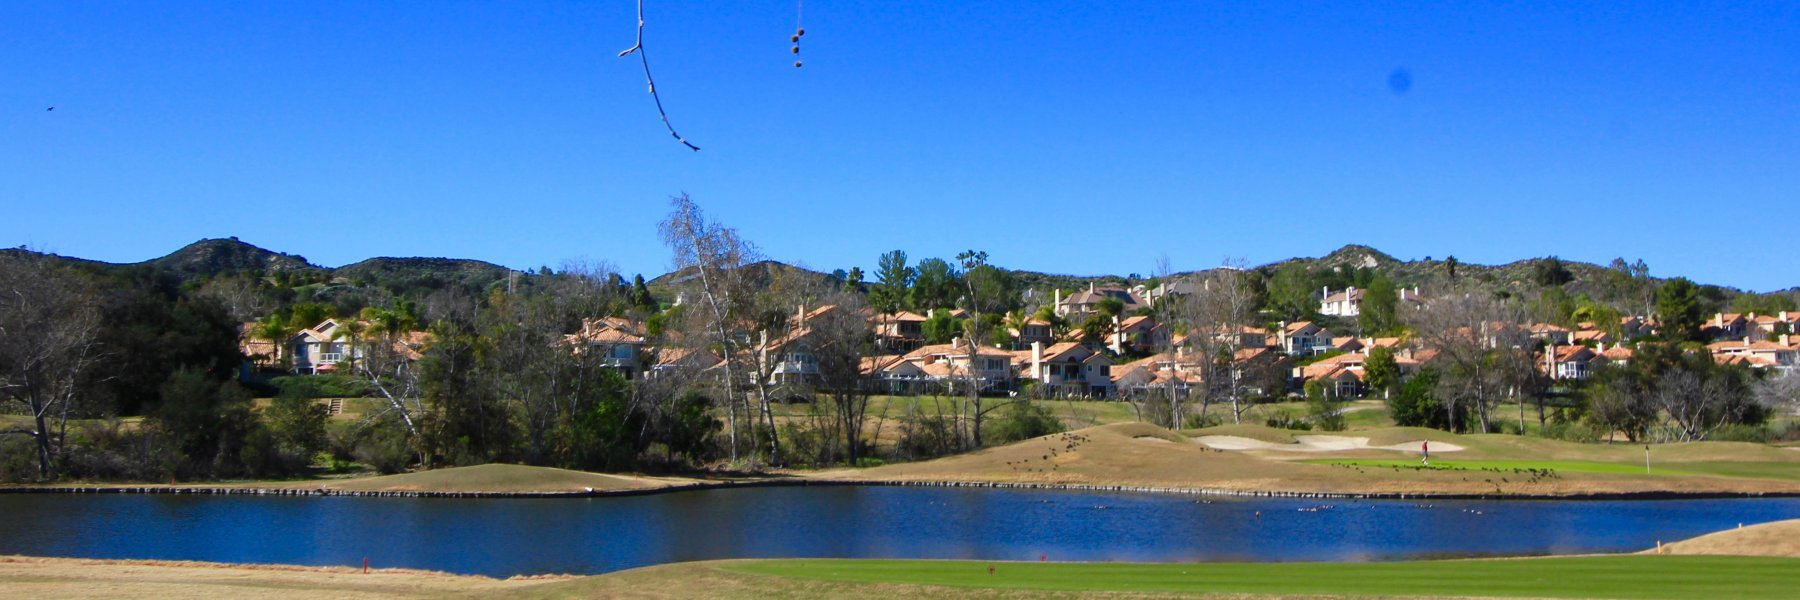 Fairway Oaks is a community of homes in Coto de Caza, California